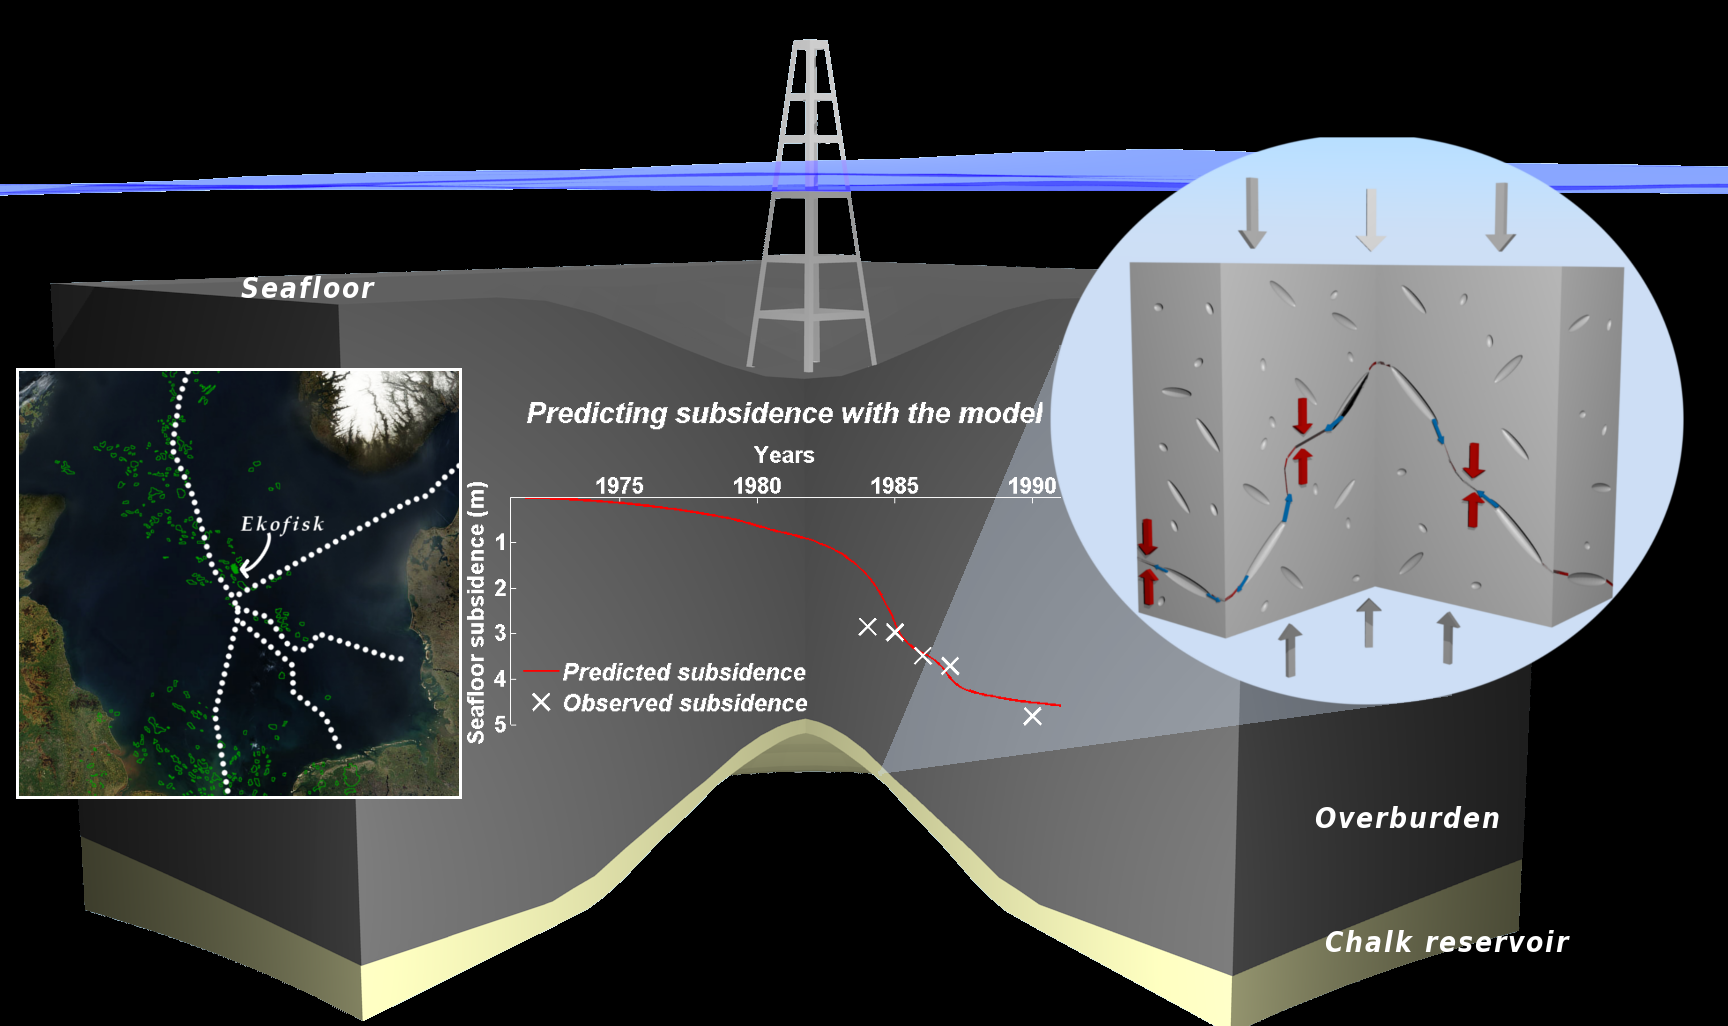 The Ekofisk field: location, mechanism of compaction and predicted subsidence (by Daniel Keszthelyi)